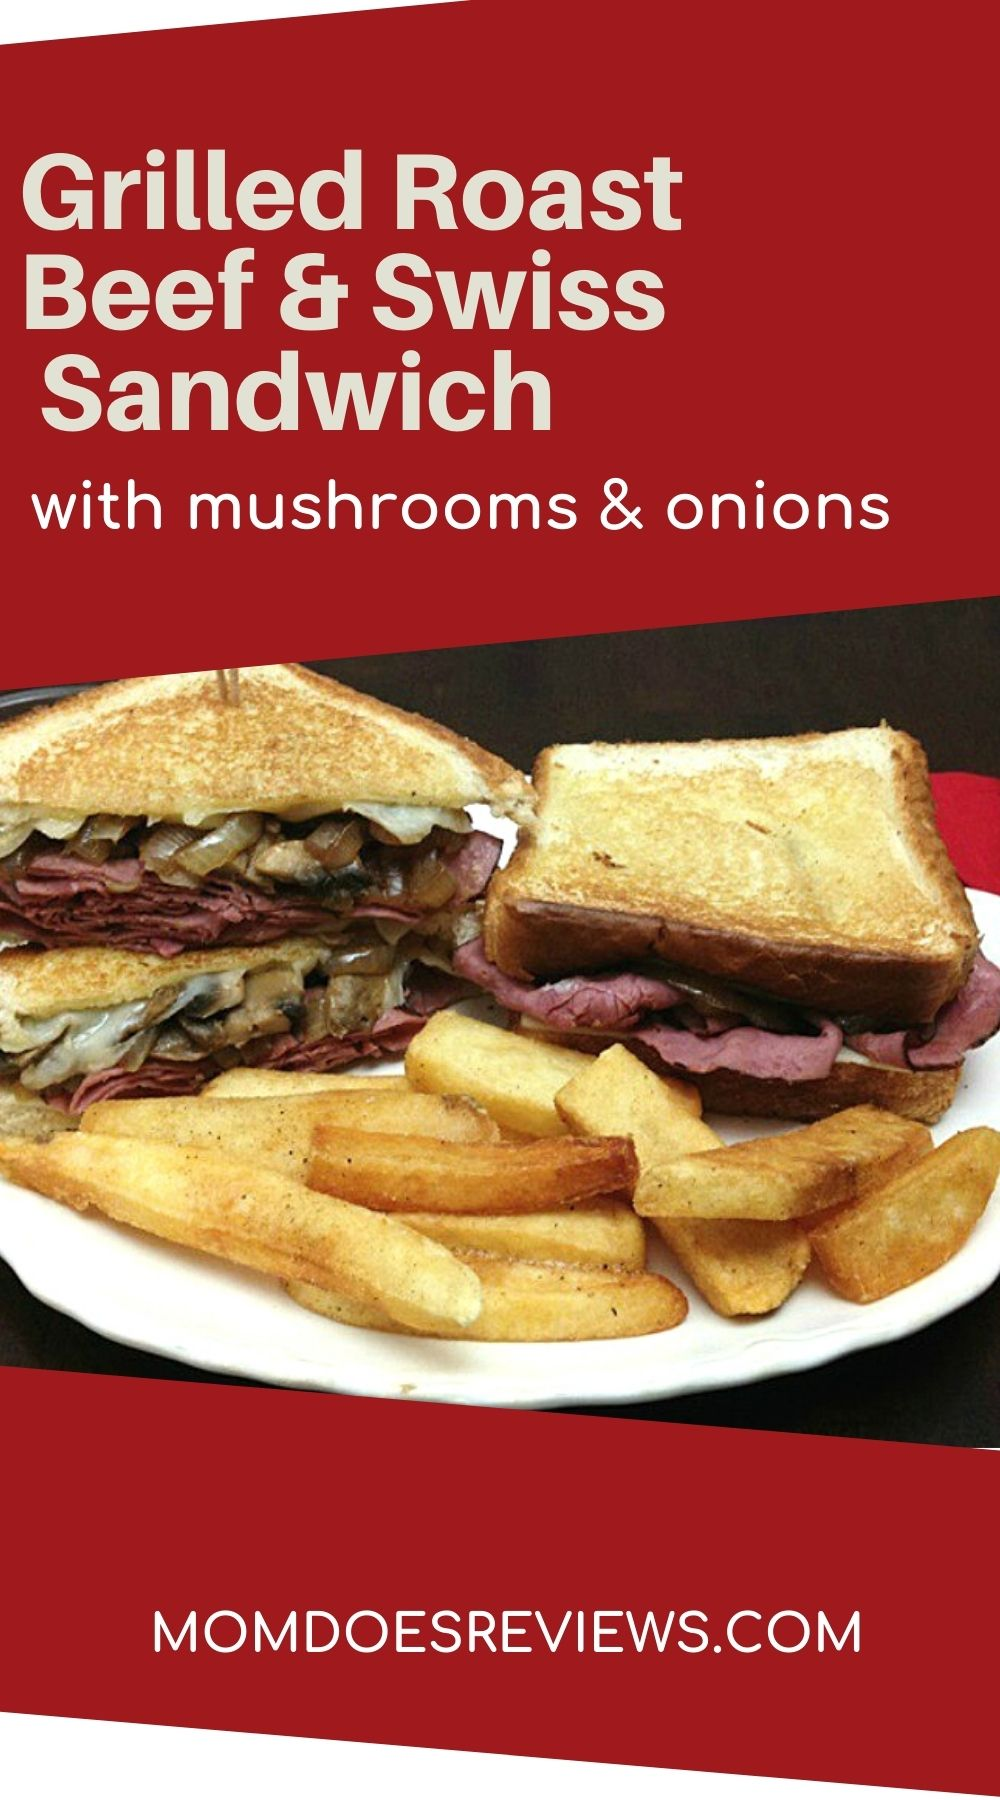 Grilled Roast Beef & Swiss Cheese Sandwich with Mushrooms and Onions